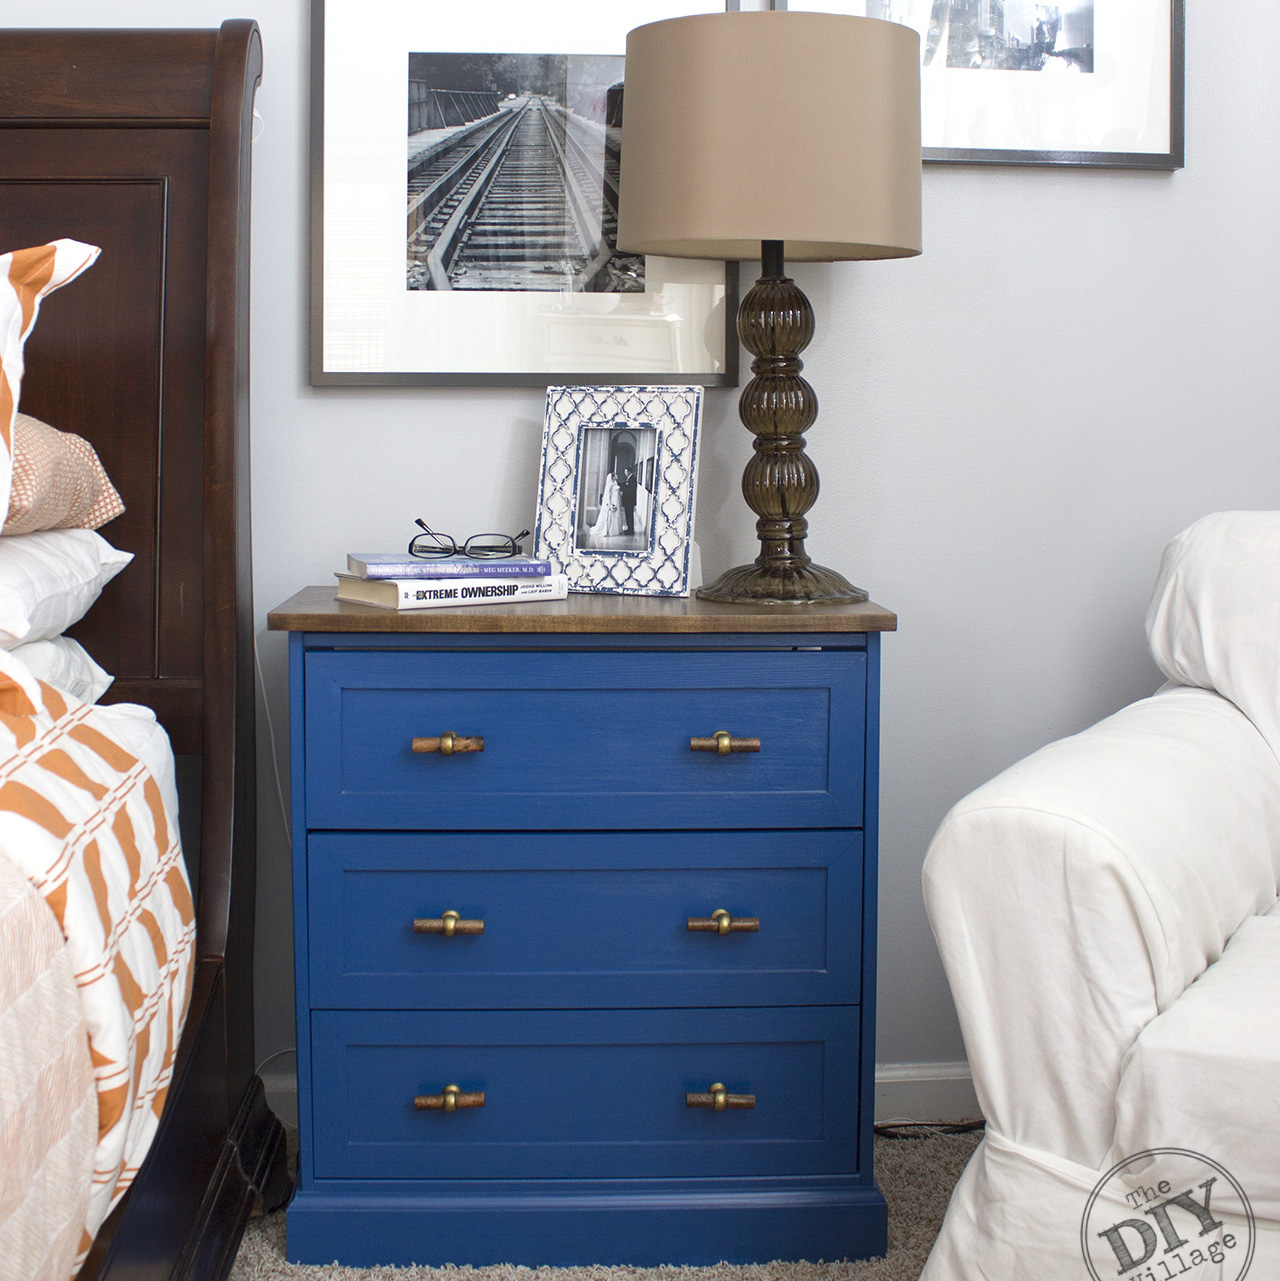 From Dresser to Nightstand - IKEA RAST Makeover - The DIY ...